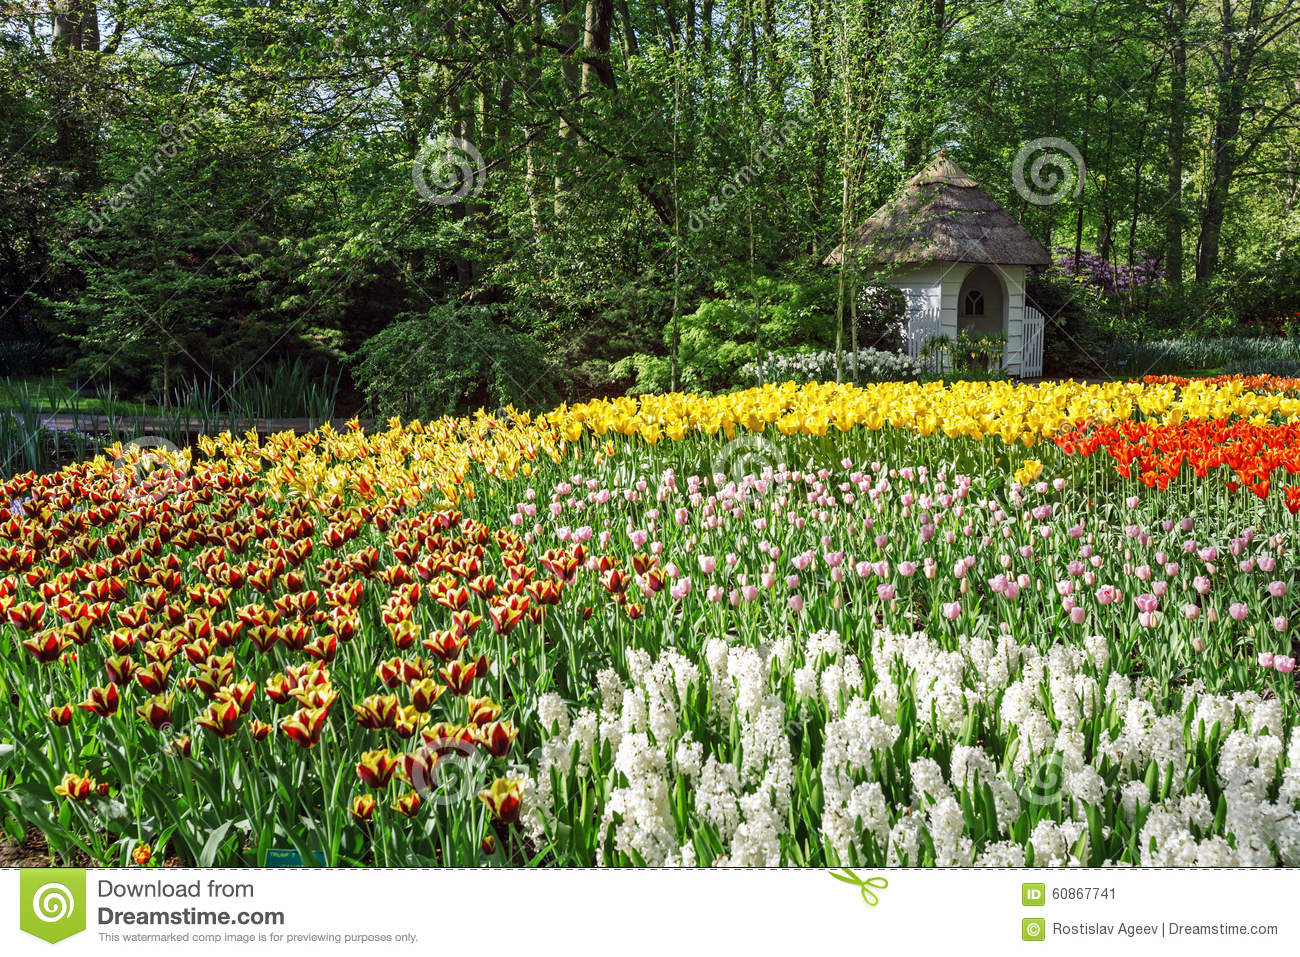 blumen garten keukenhof amsterdam stockfoto bild 60867741. Black Bedroom Furniture Sets. Home Design Ideas